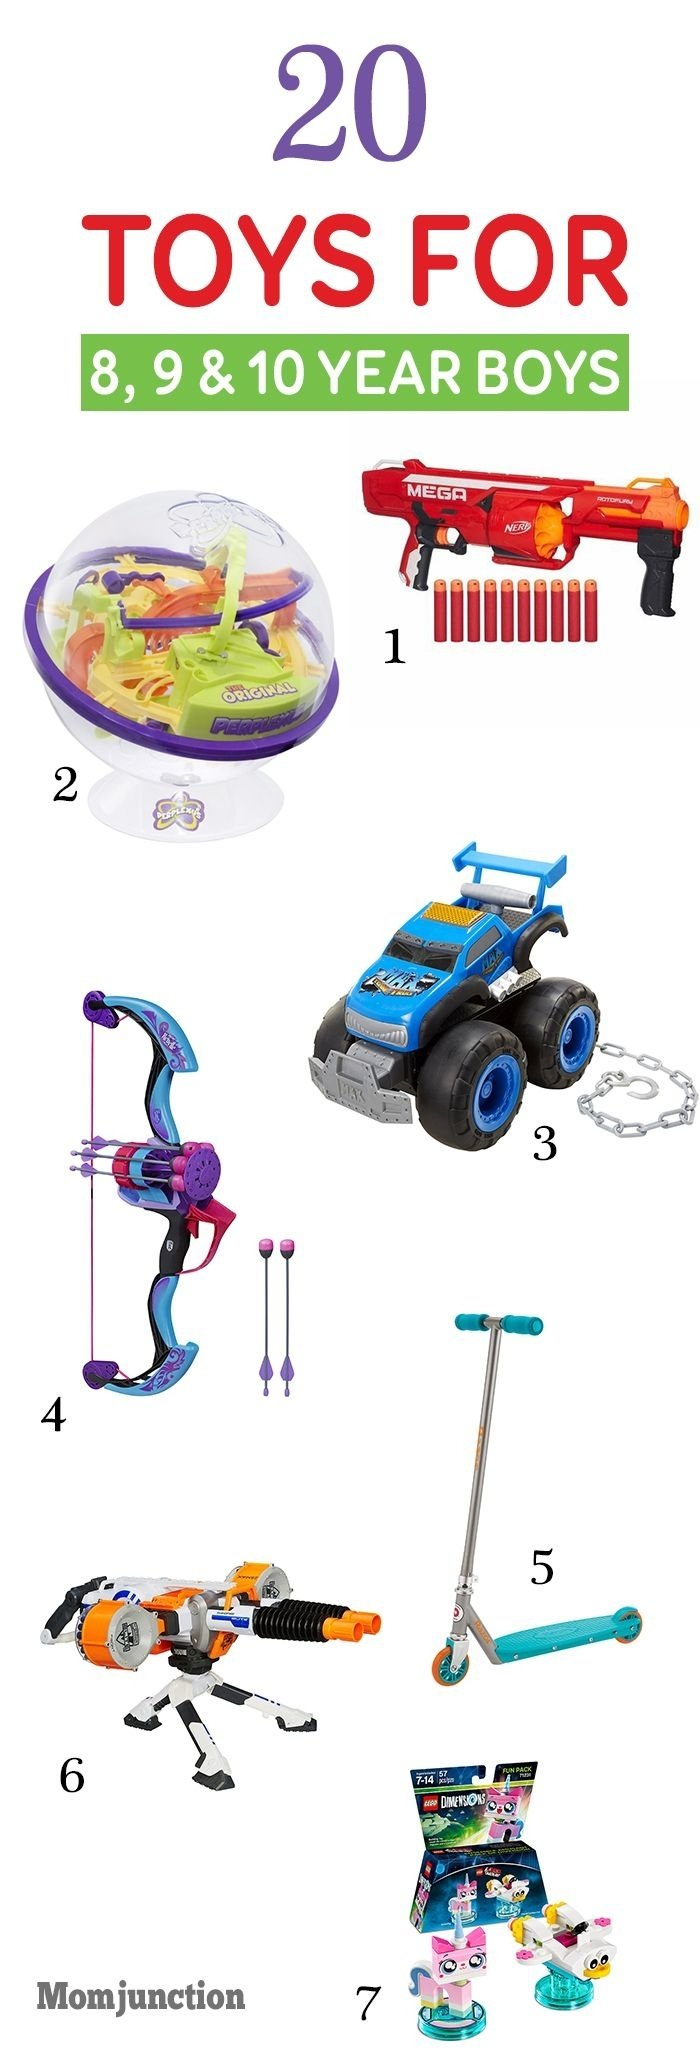 10 Lovely Gift Ideas For An 8 Year Old Boy 19 perfect toys for 8 9 and 10 year old boys 10 years toy and gift 3 2020